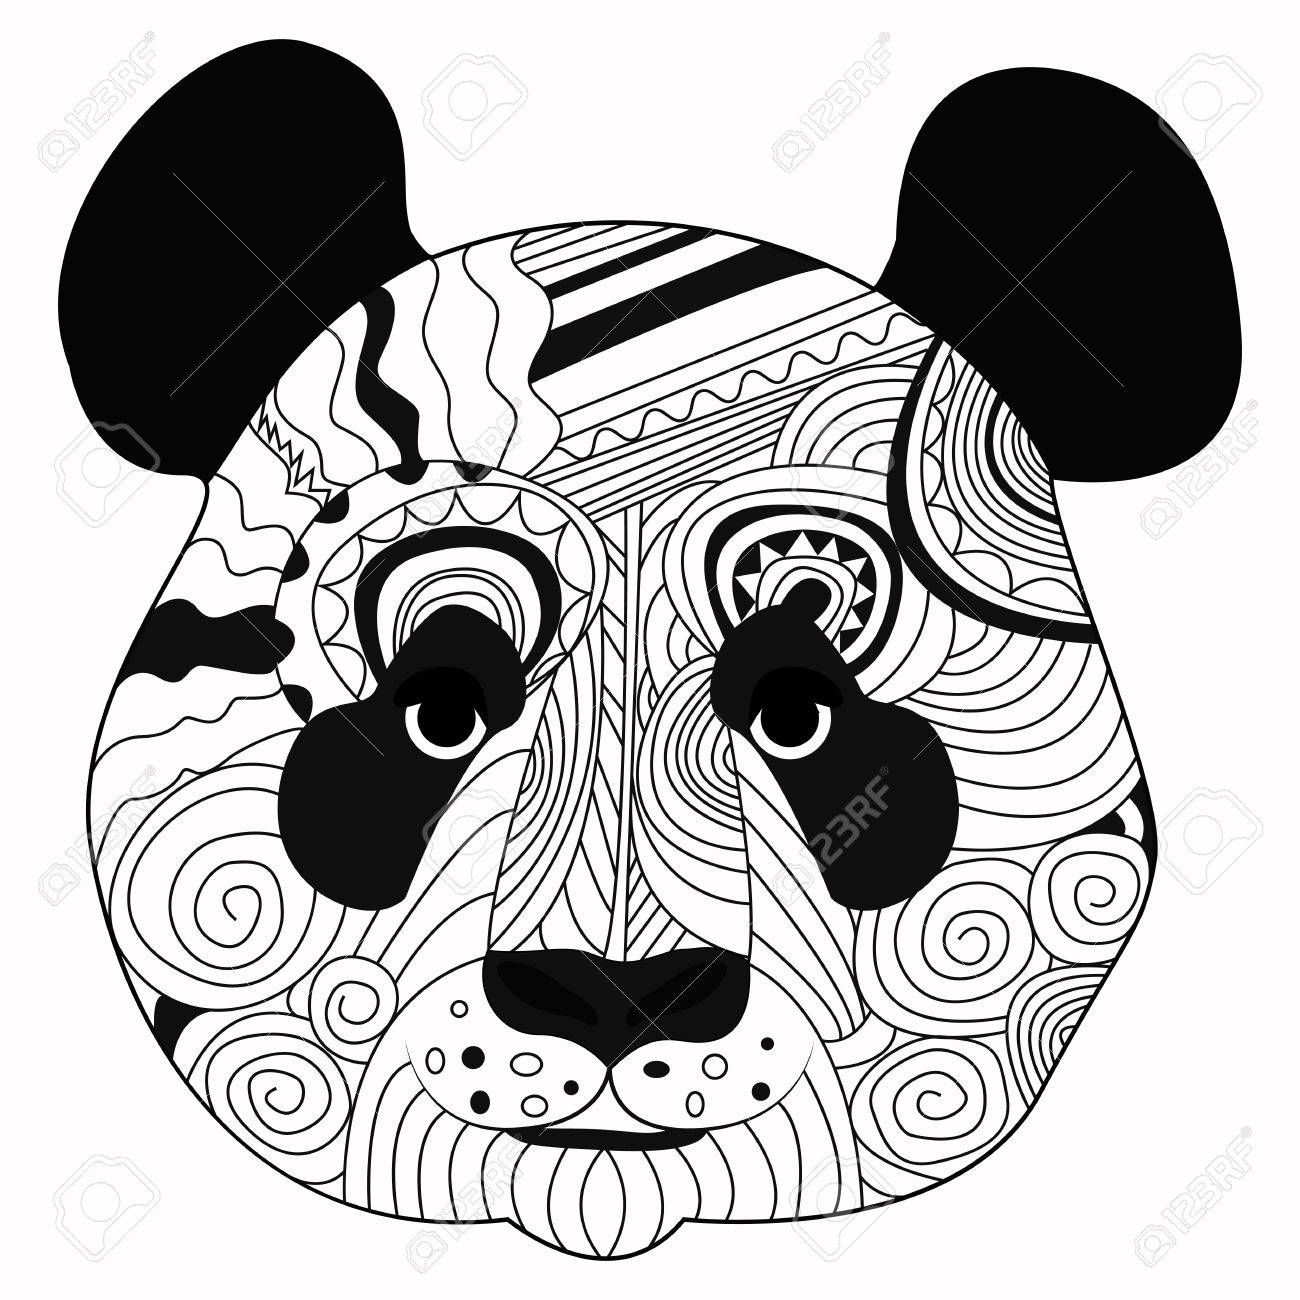 1300x1300 Line Art Hand Drawing Black Panda Isolated On White Background